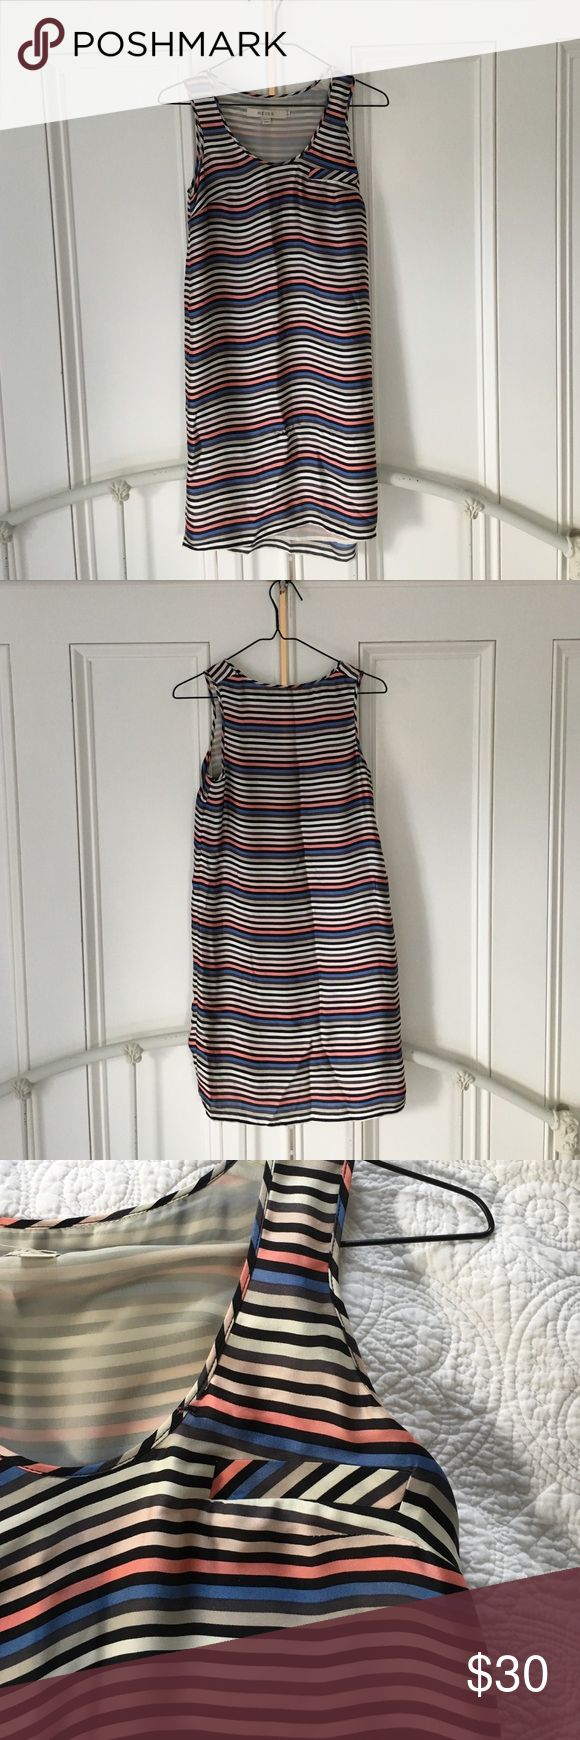 Striped silk Reiss dress Reiss striped silk dress. Fully lined, faux chest pocket on one side, very tiny pull at the bottom of the front (very hard to notice- see last photo). Hits a few inches above the knee. Perfect to layer with tights, boots, and a cardigan this winter. Reiss Dresses Midi